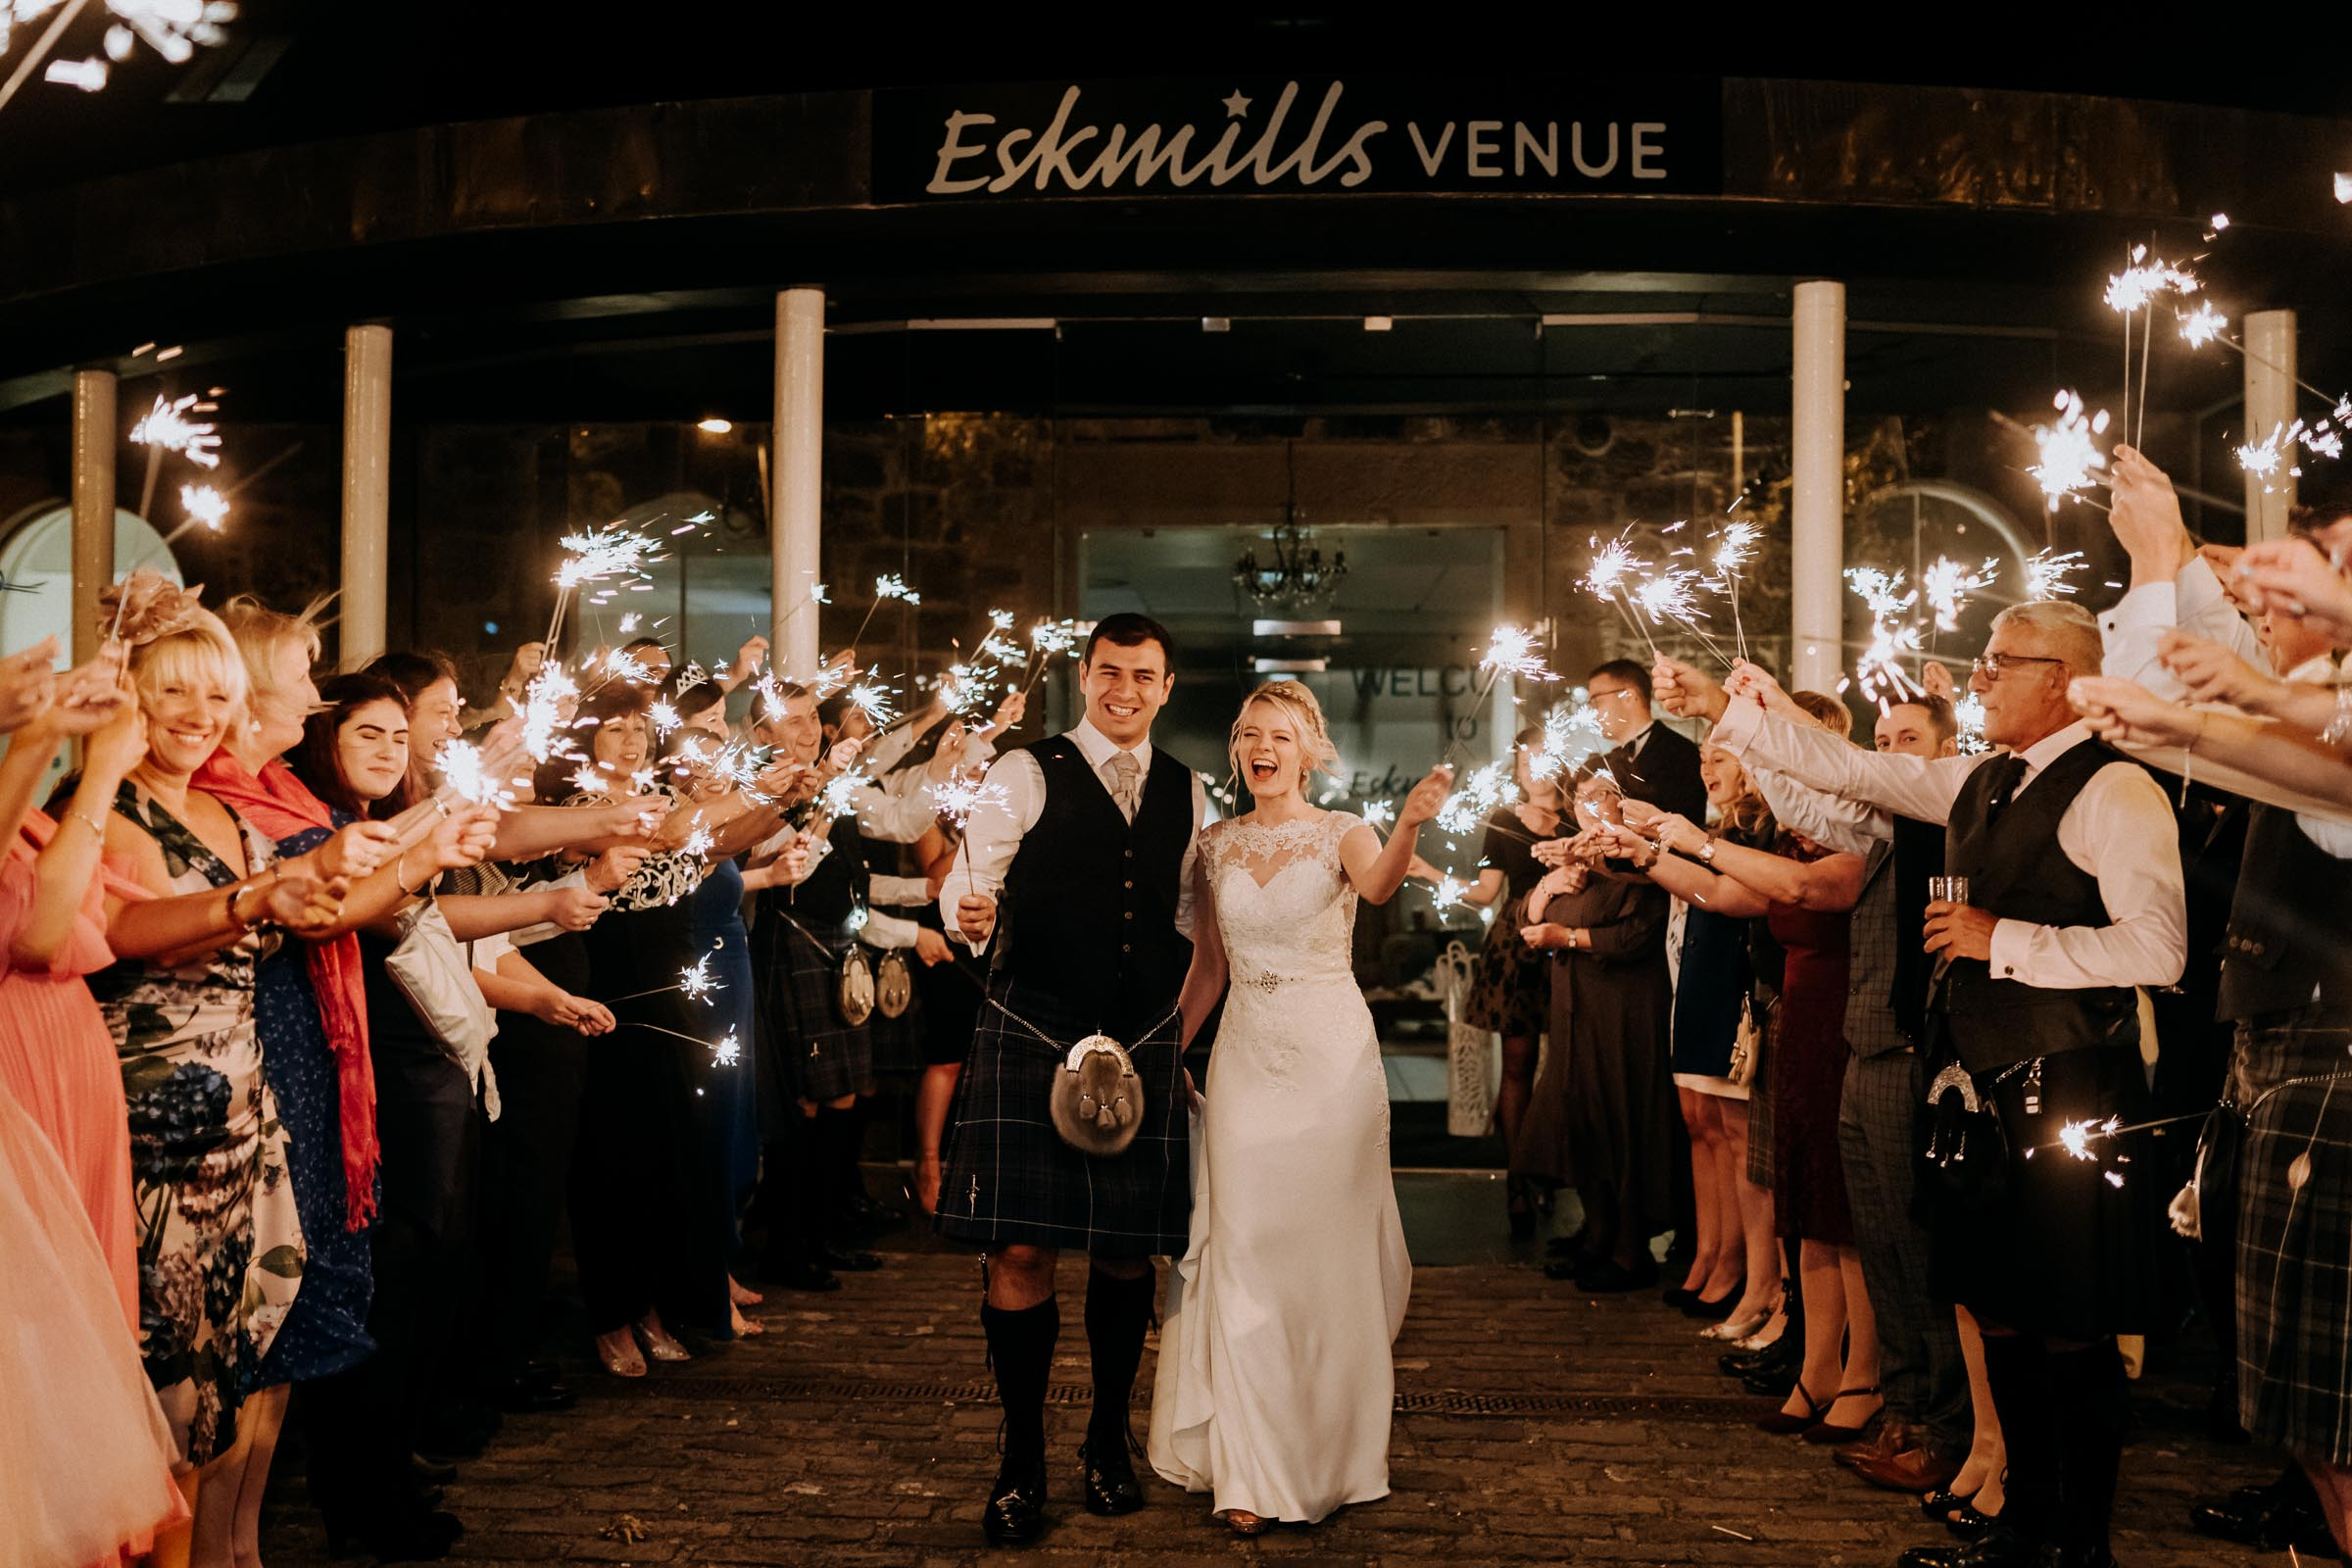 Eskmills Venue - Located just outside Edinburgh, this versatile venue is an impressive space which can hold both indoor and outdoor weddings. With award-winning food and very friendly staff, this is another must see! Check out some photos from Naomi and Daniel's fabulous wedding day here.